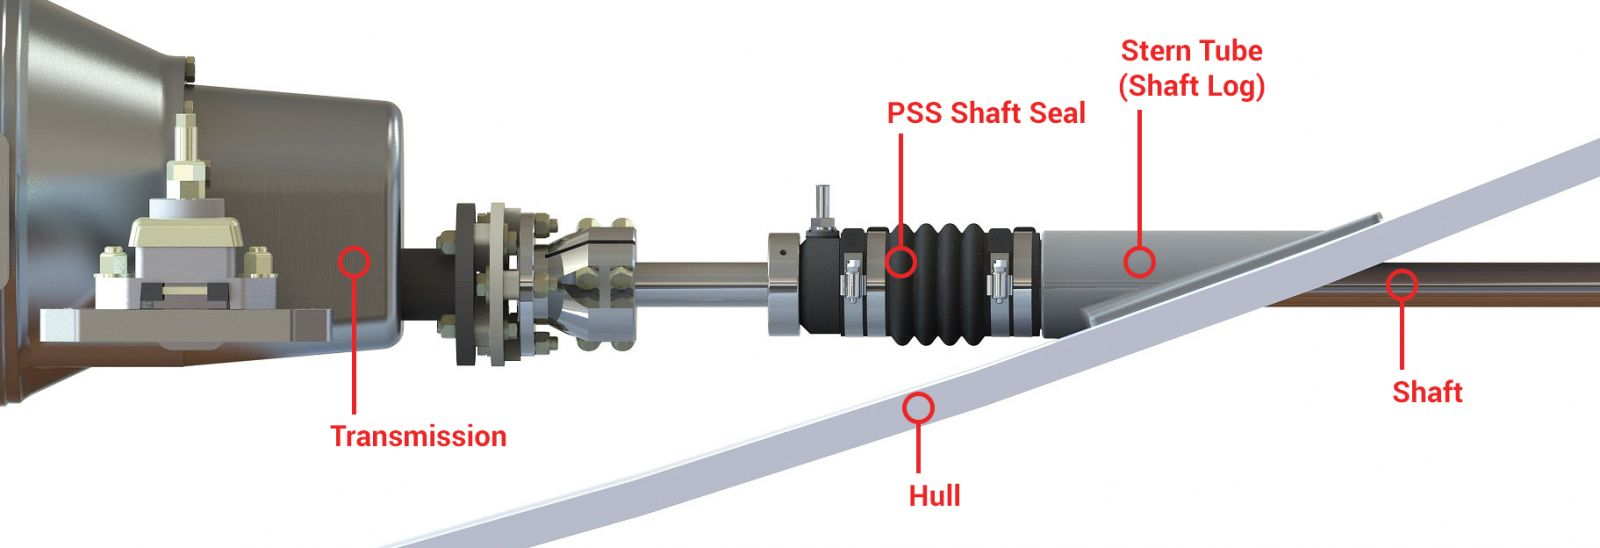 pss-shaft-seal-how-it-works (1).jpg